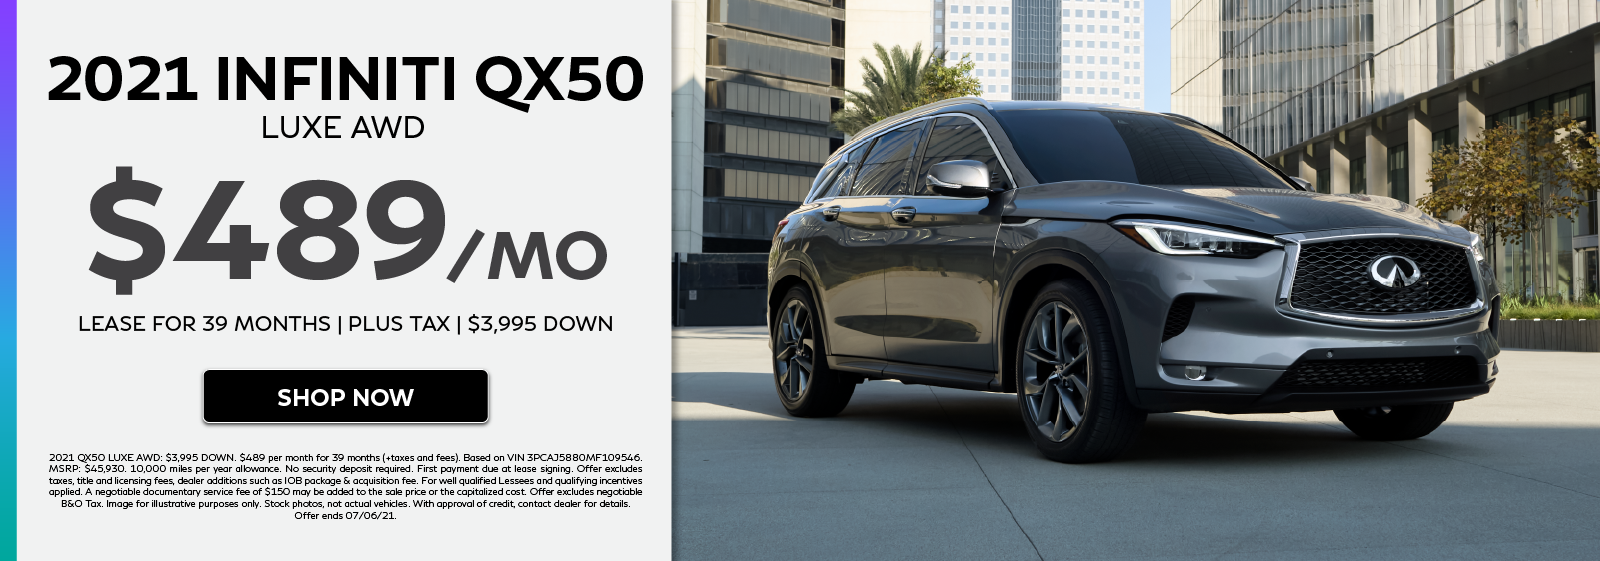 2021 INFINITI QX50 LUXE AWD lease offer. Click to shop now.